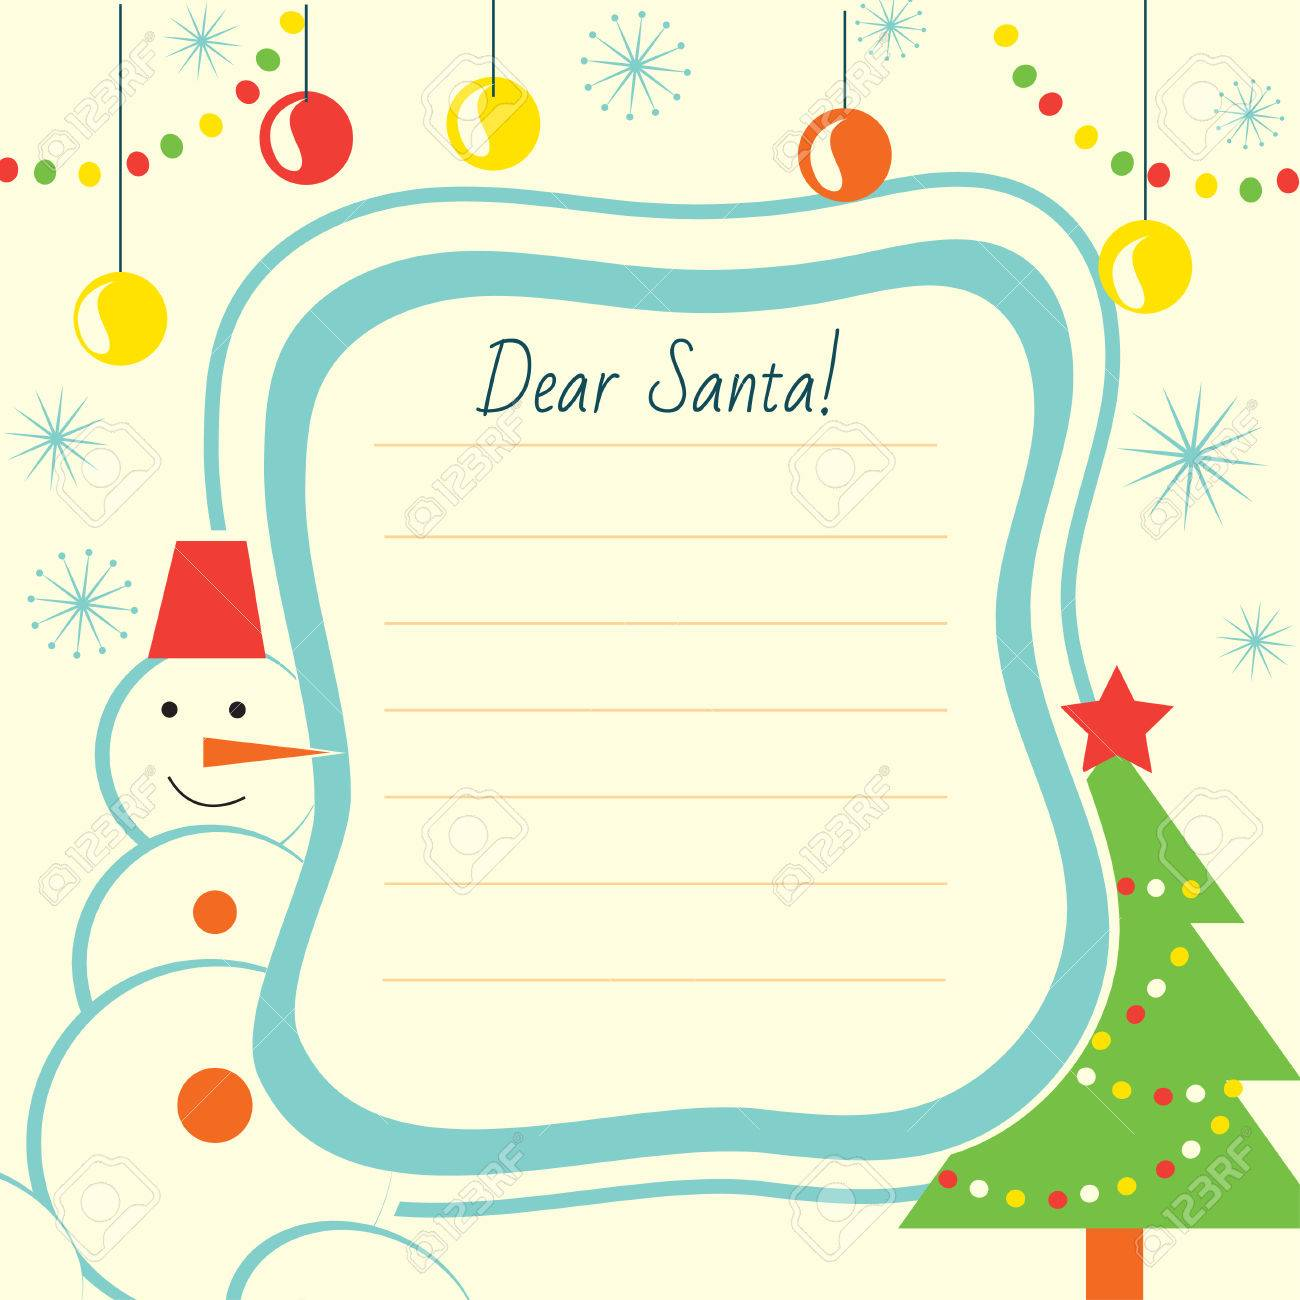 Christmas Letter Template To Santa Claus For Print Or Website